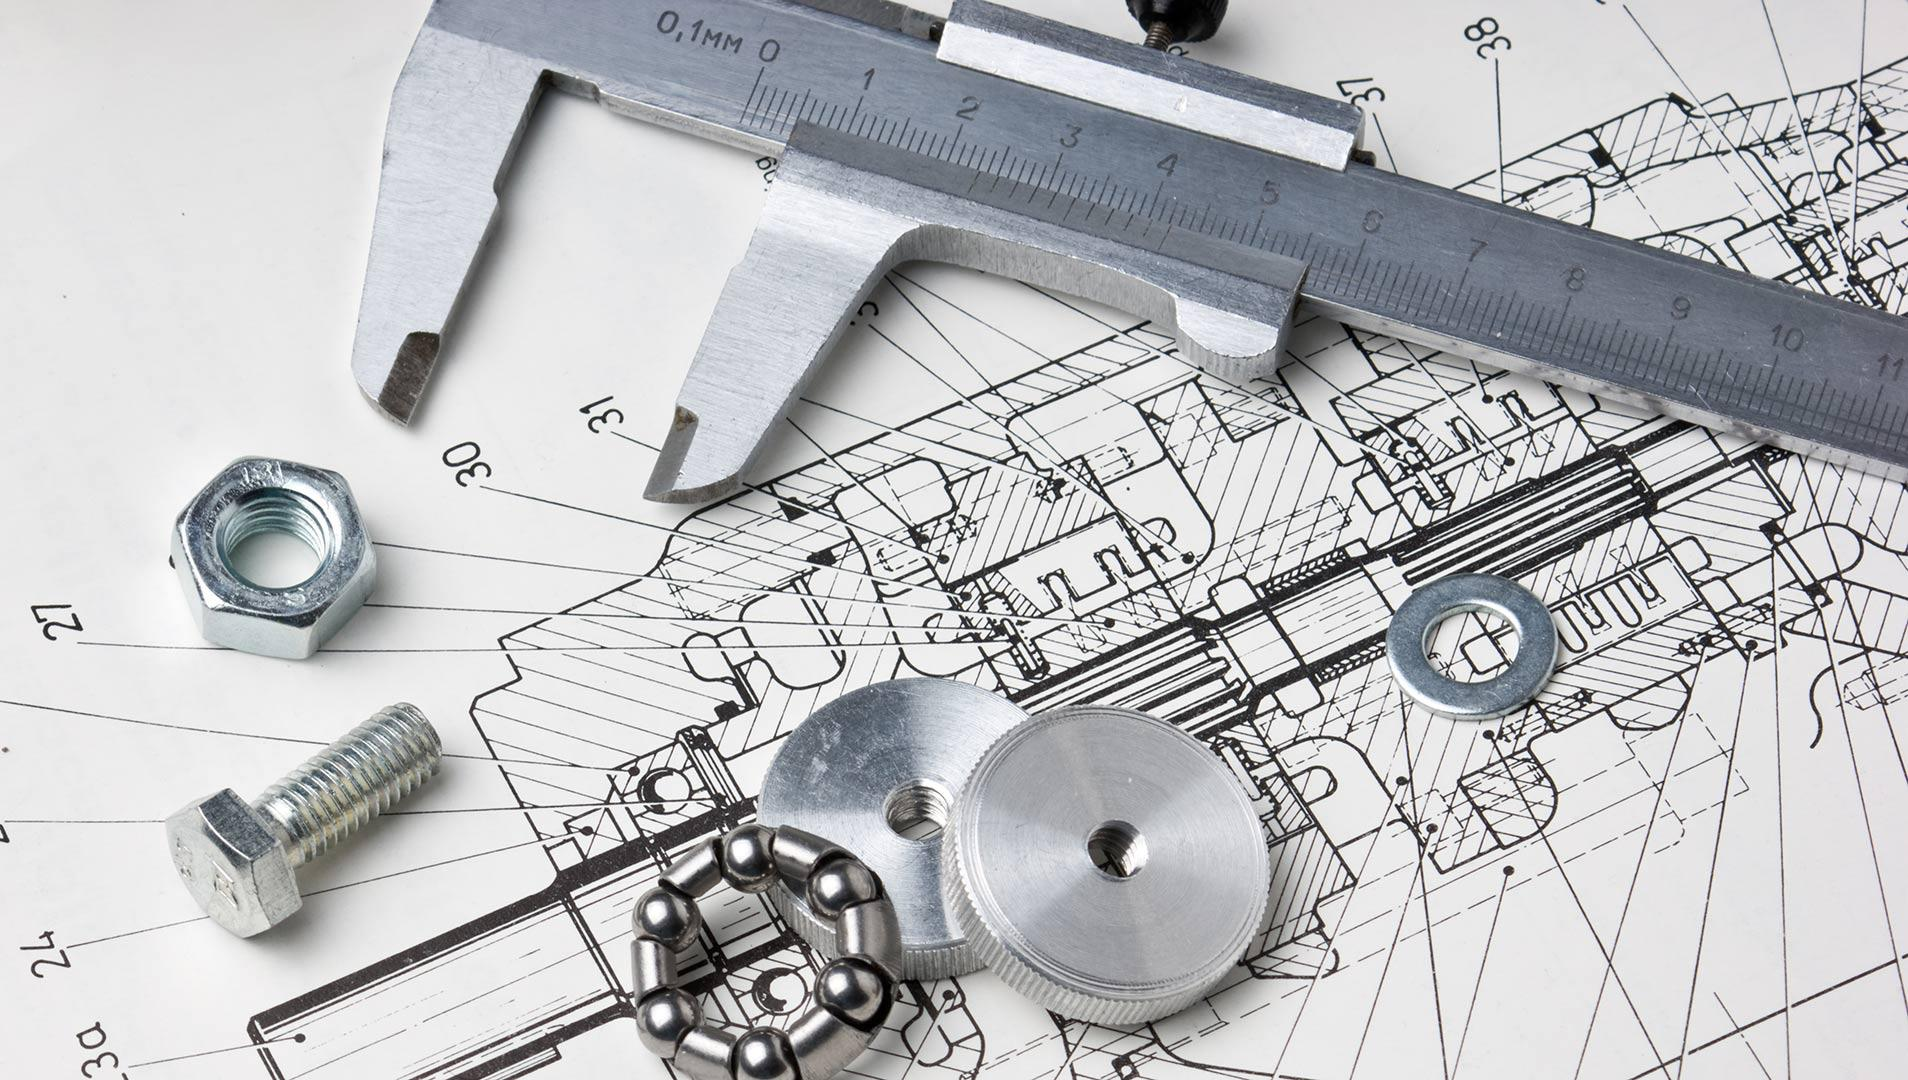 mechanical engineering tools and diagram